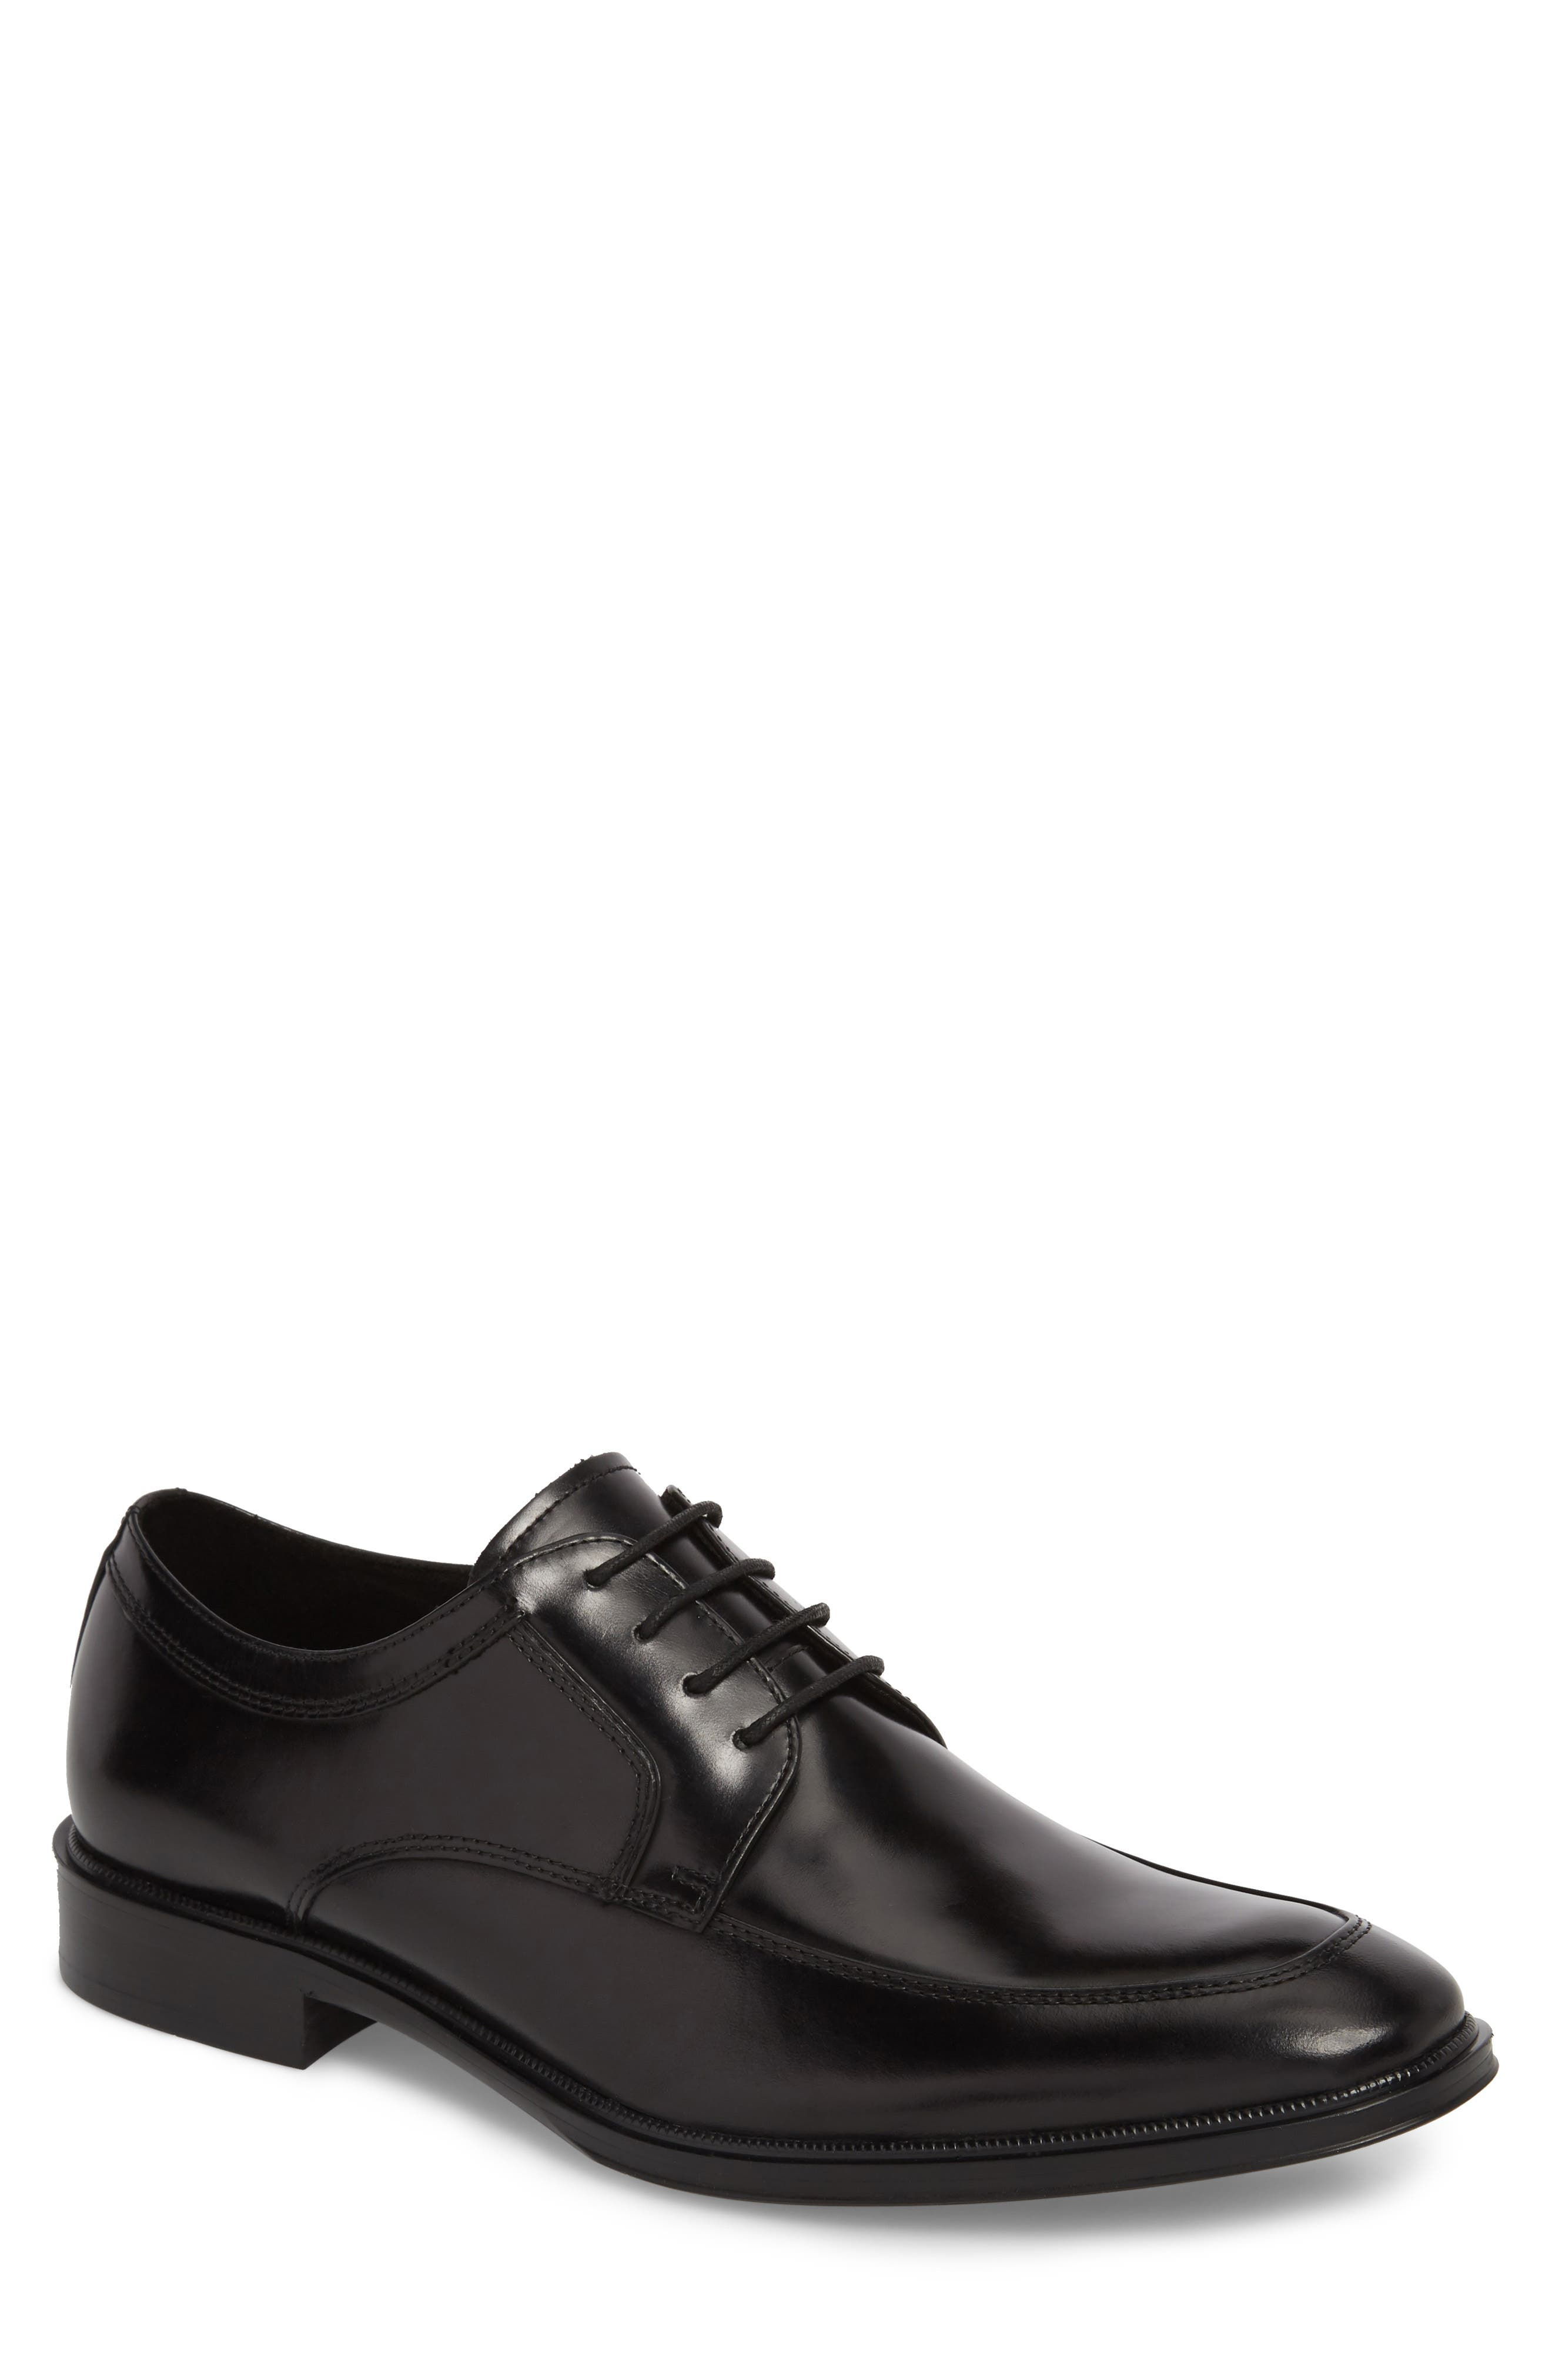 KENNETH COLE NEW YORK Tully Apron Toe Derby, Main, color, BLACK LEATHER